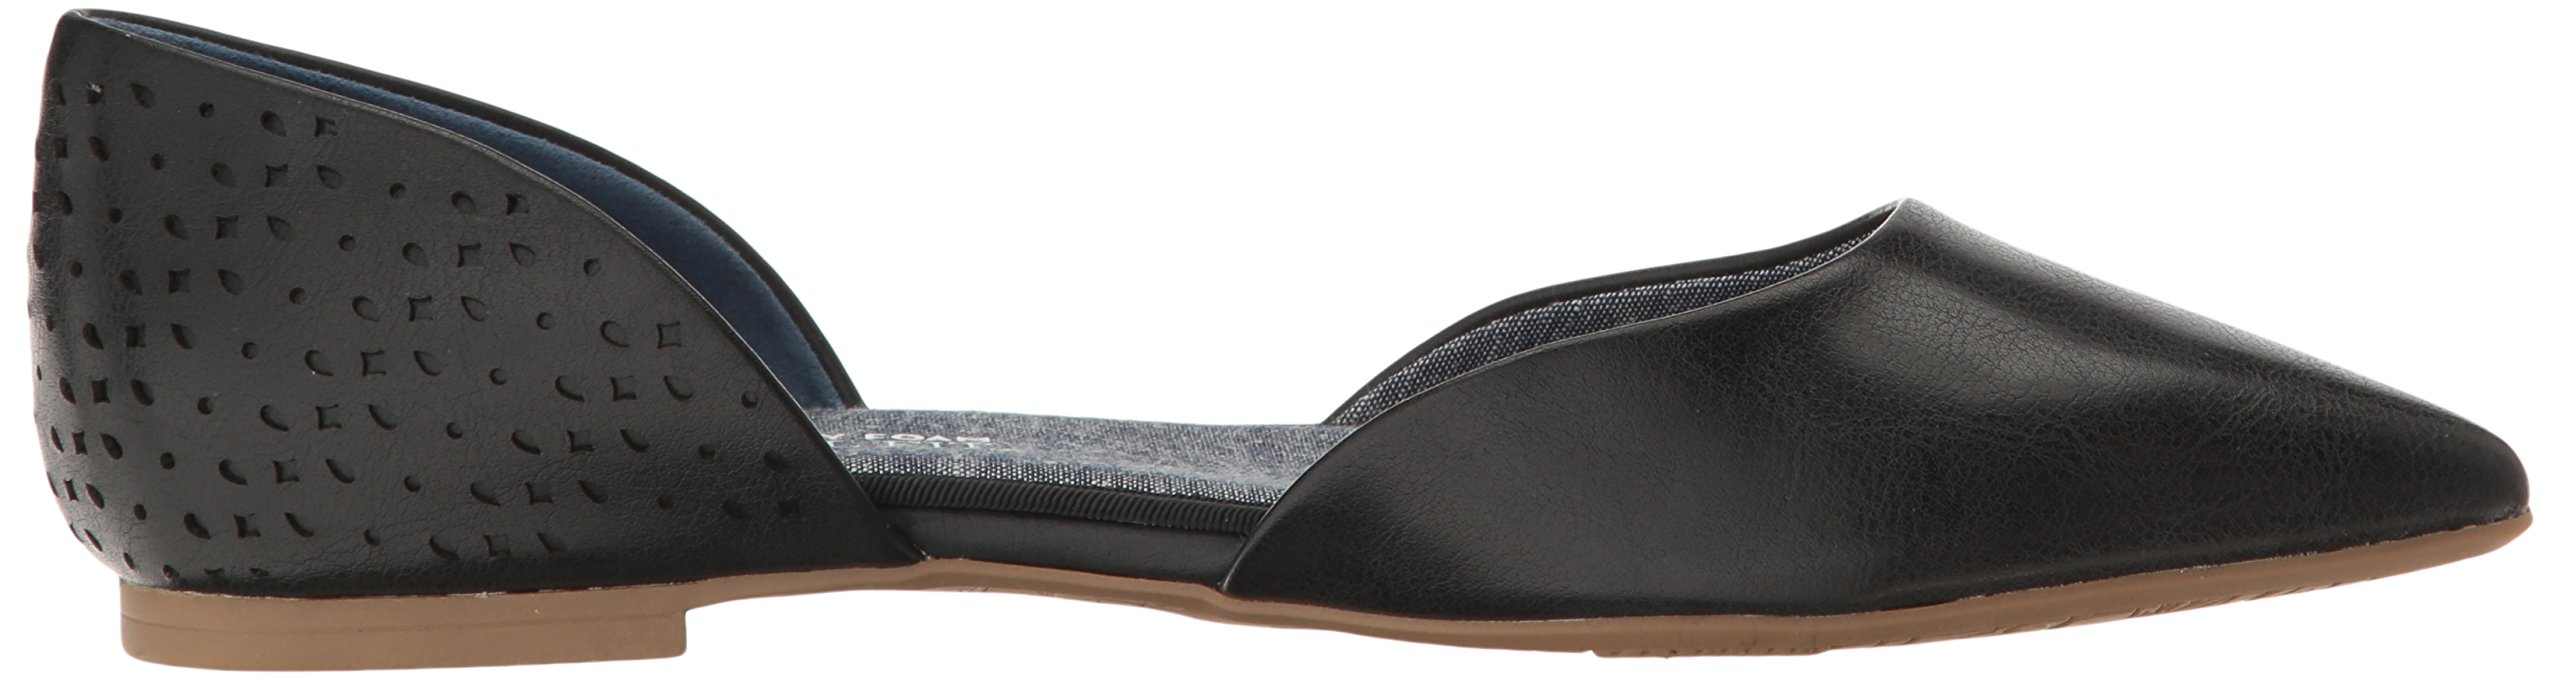 Dr. Scholl's Women's Svetlana Pointed Toe Flat, Black Perforated, 9.5 M US by Dr. Scholl's (Image #7)